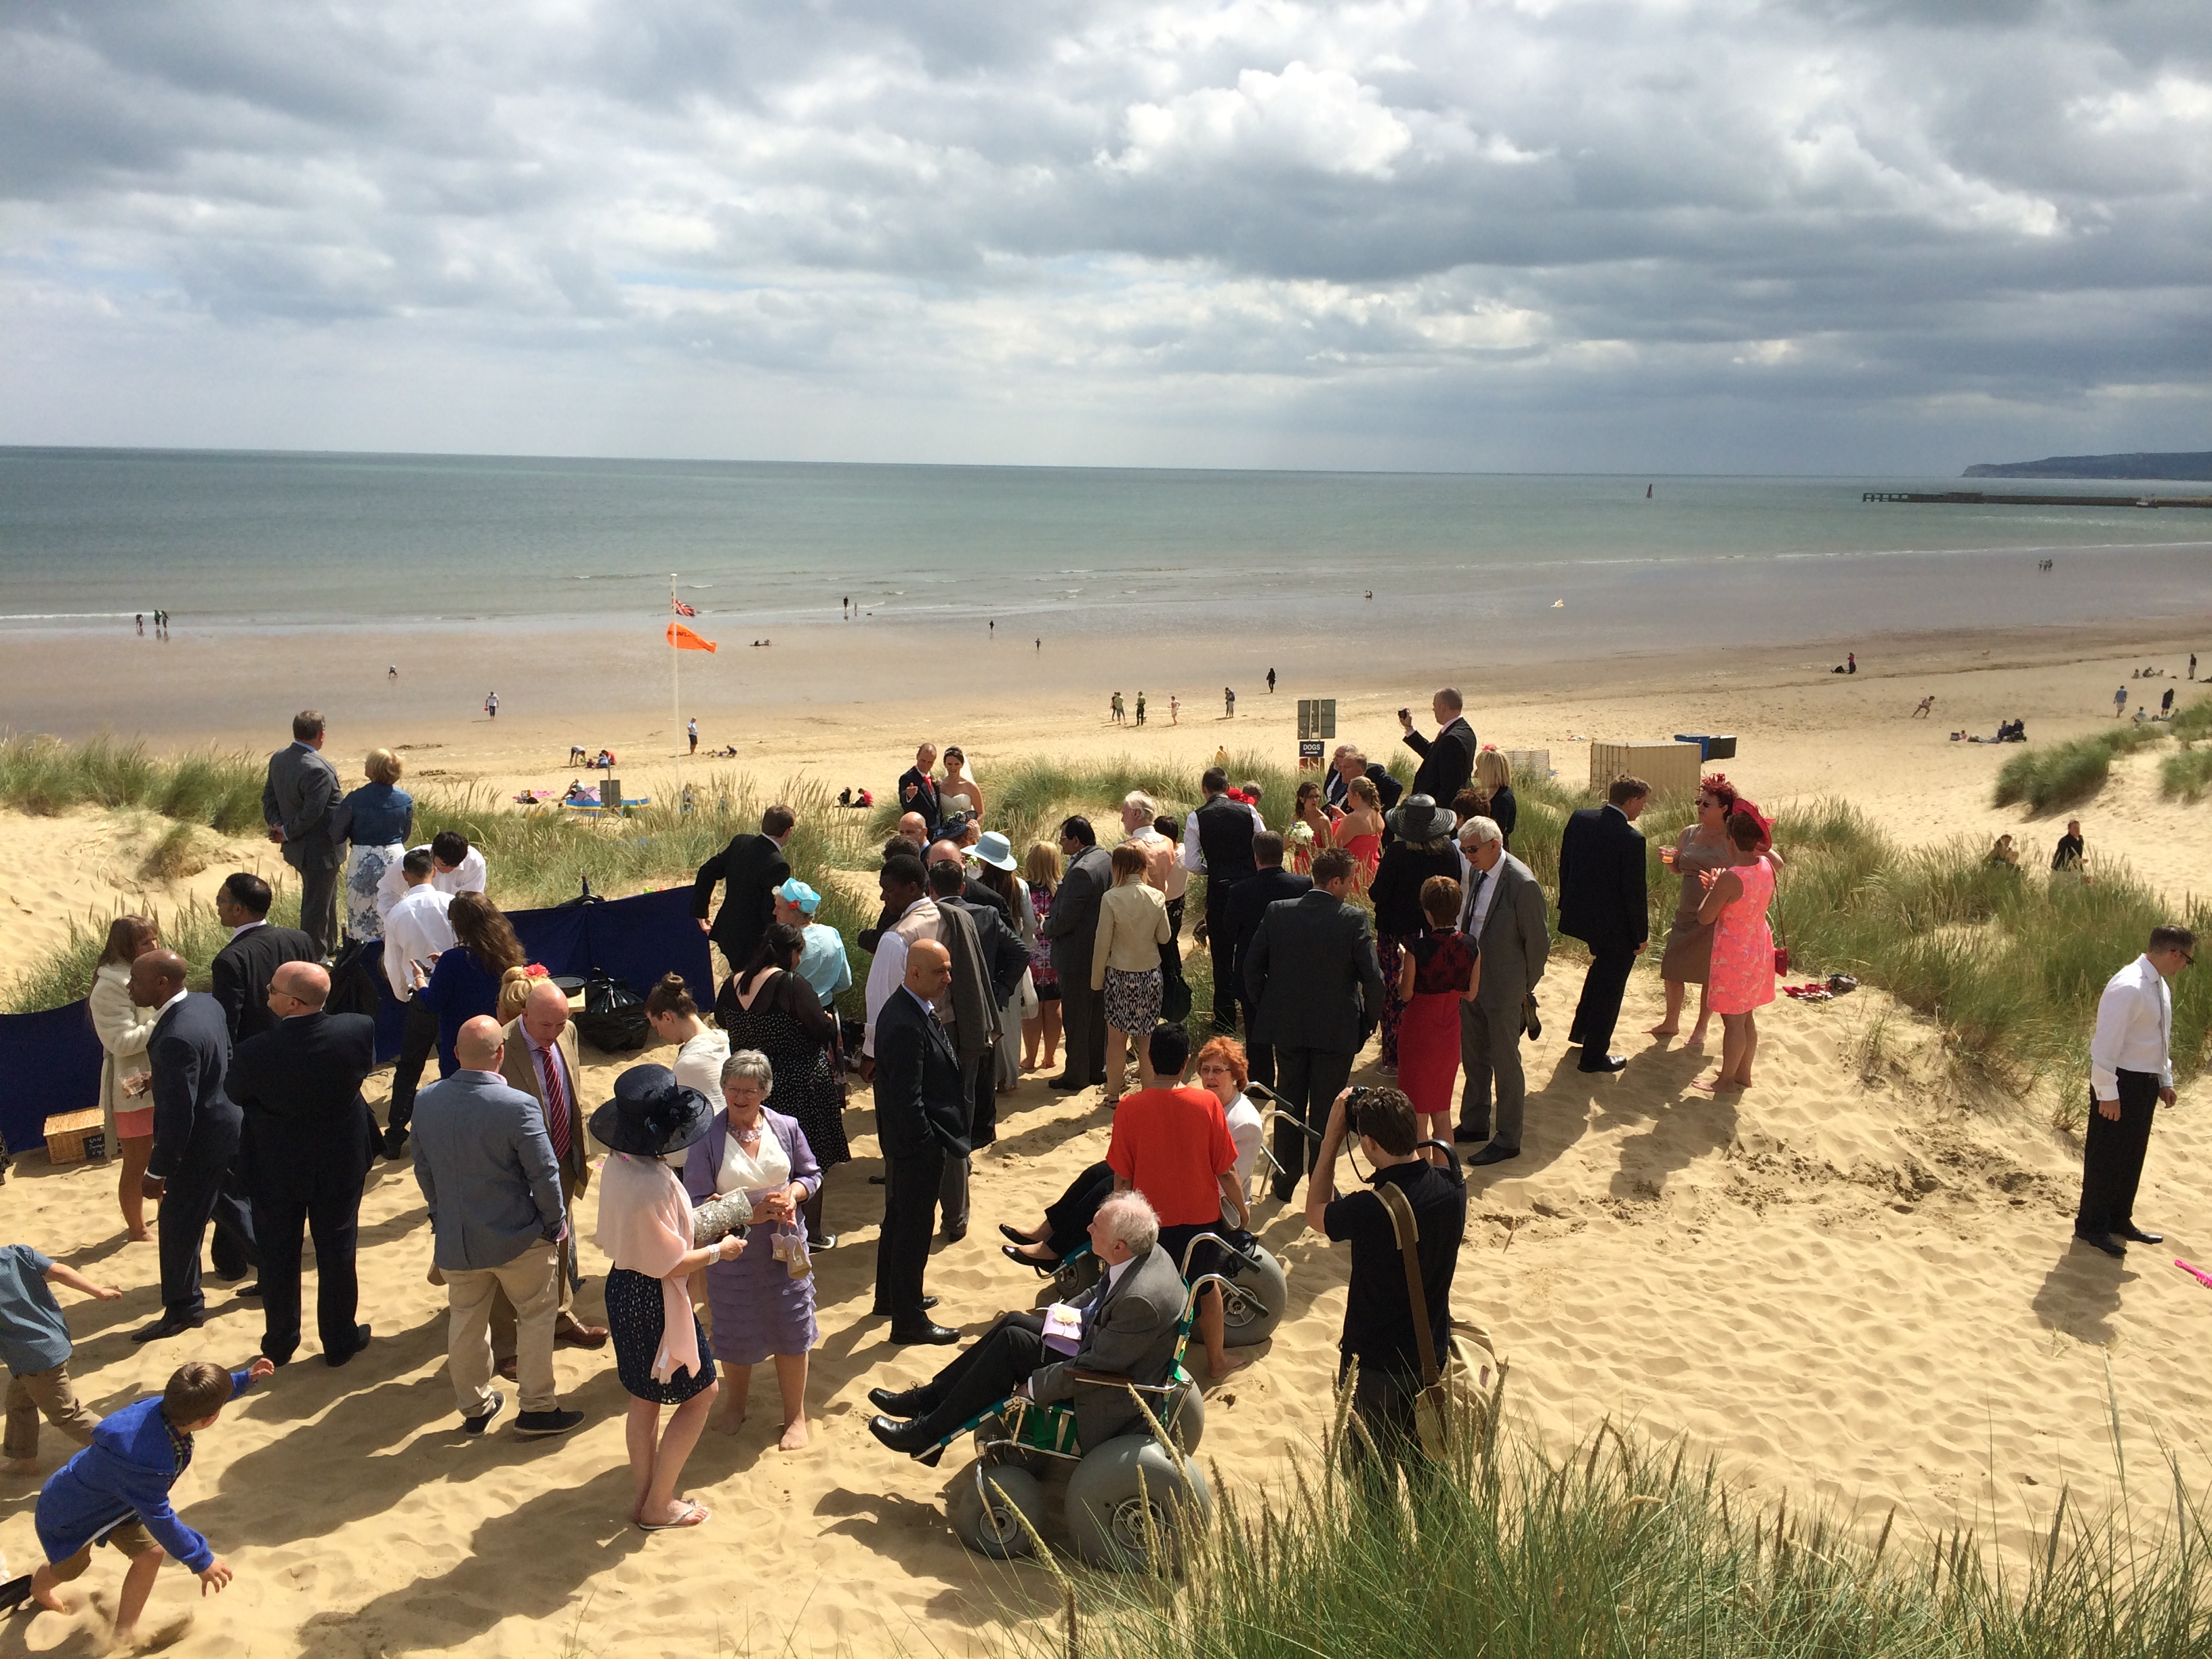 The Gallivant Hotel, Camber Sands – Claire & Vince, 15/6/2014